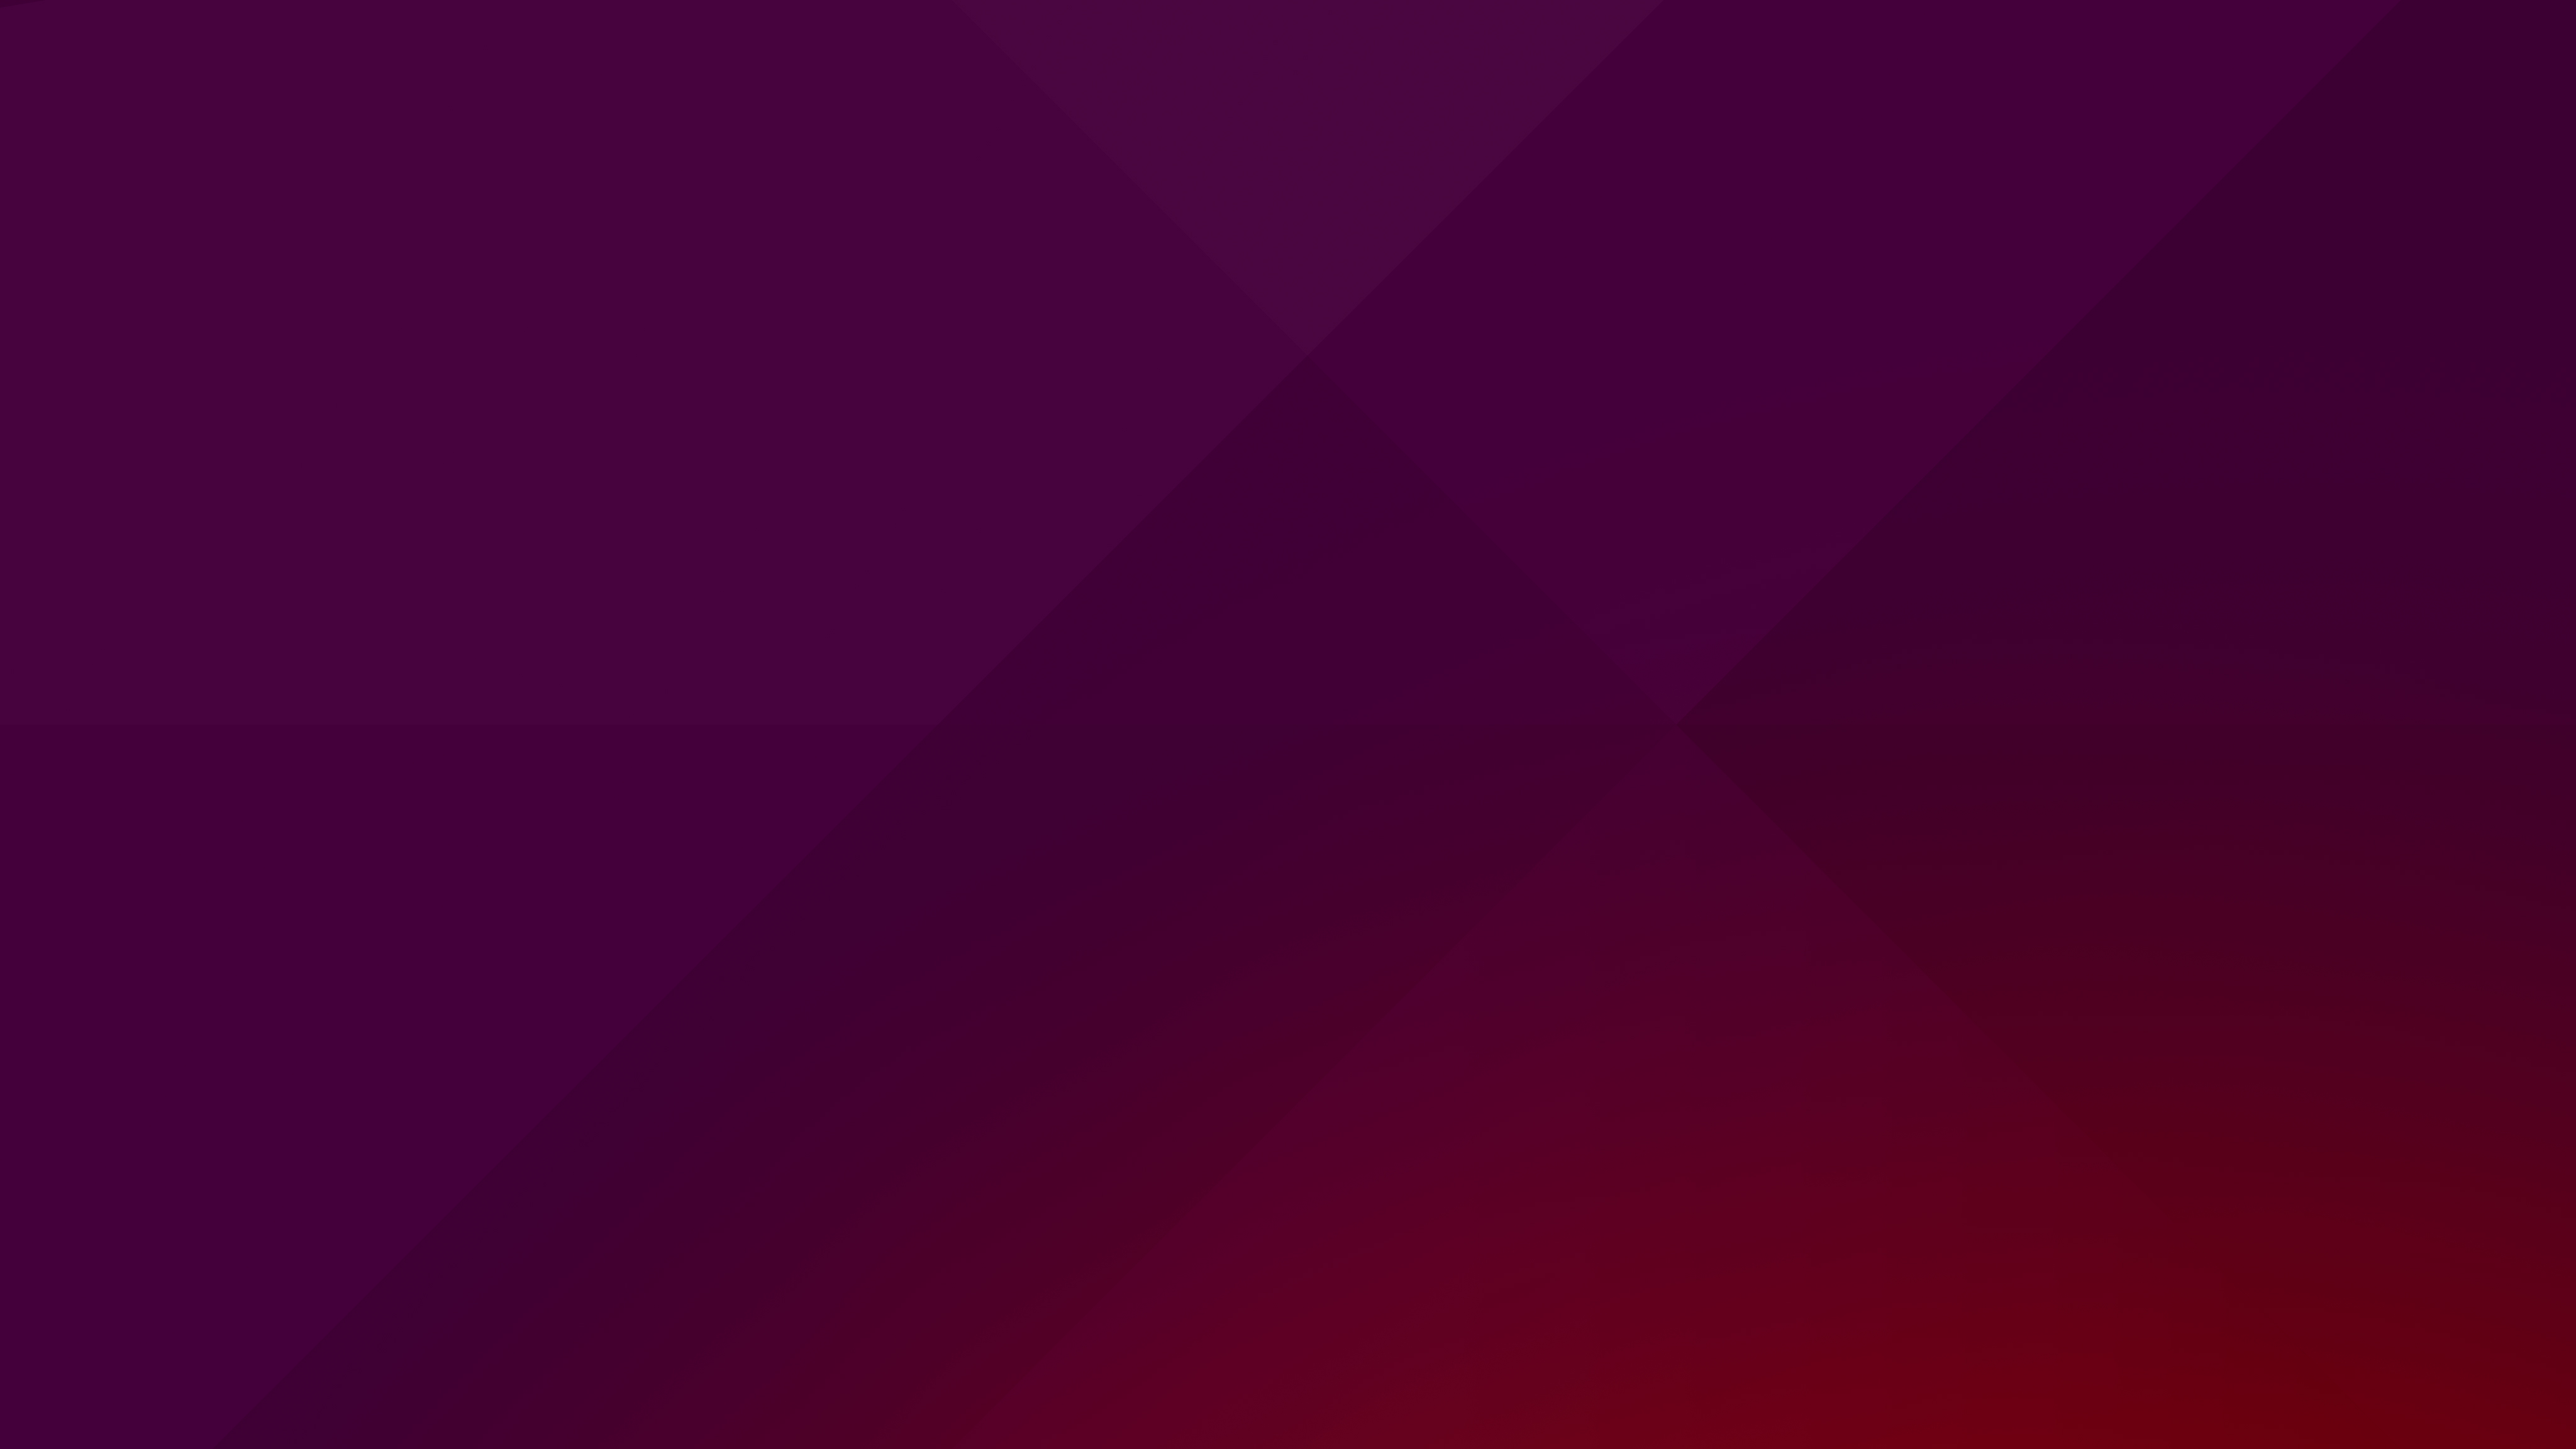 This Is Every Default Ubuntu Wallpaper From 410 to 1504 4096x2304